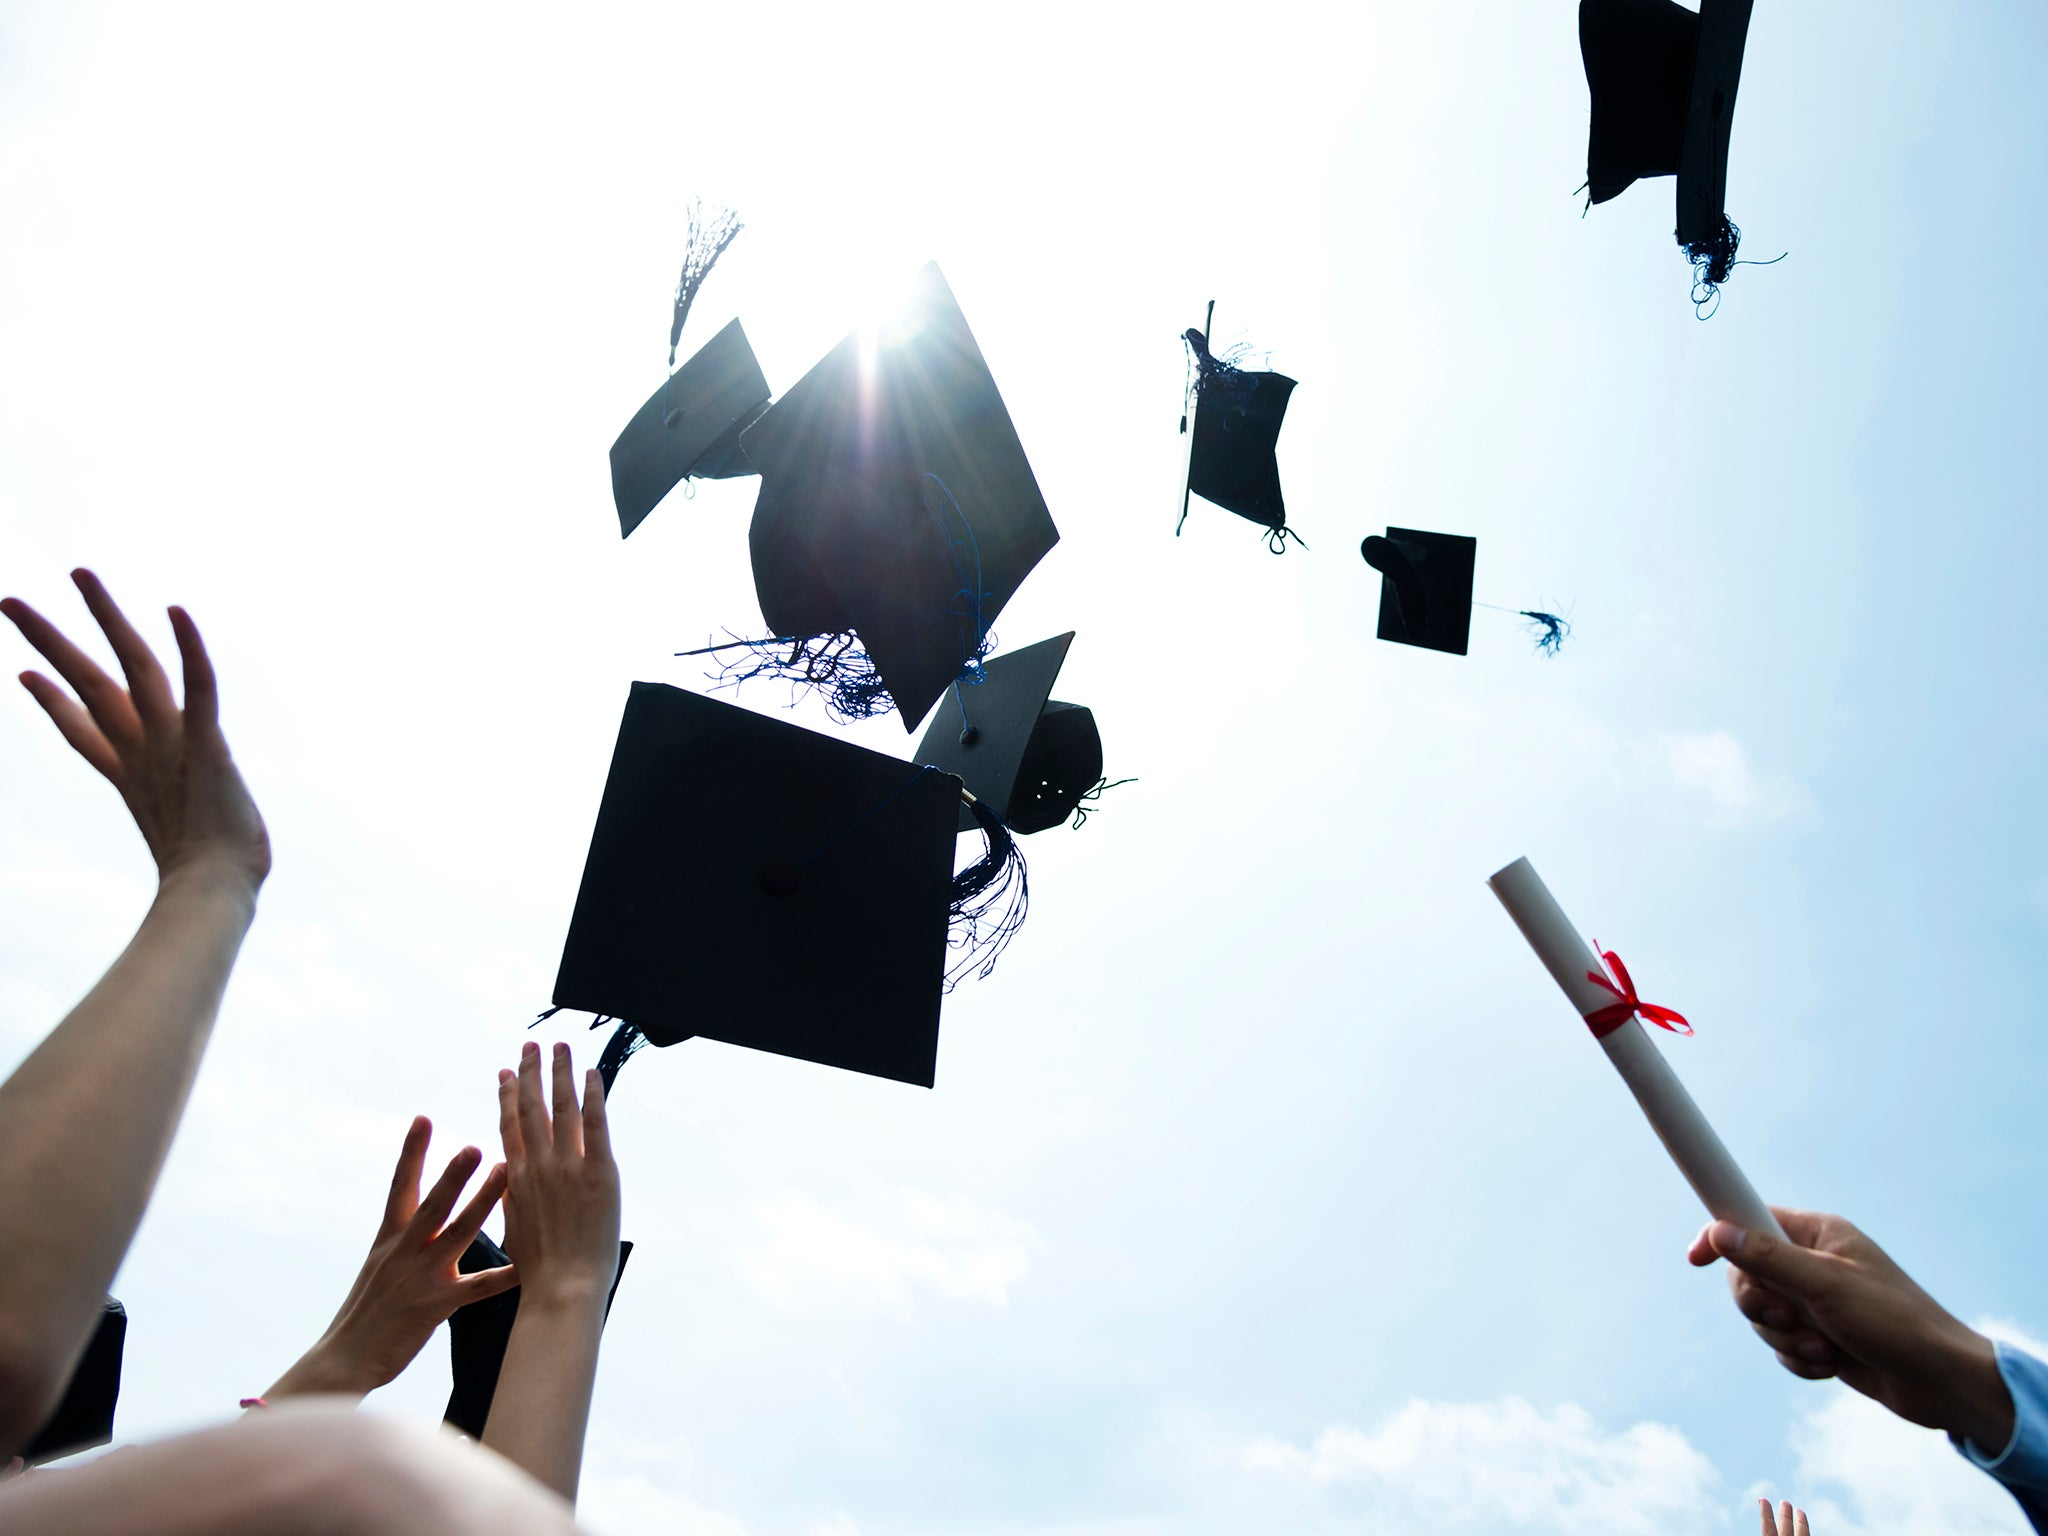 graduate debt in england higher than any other english speaking